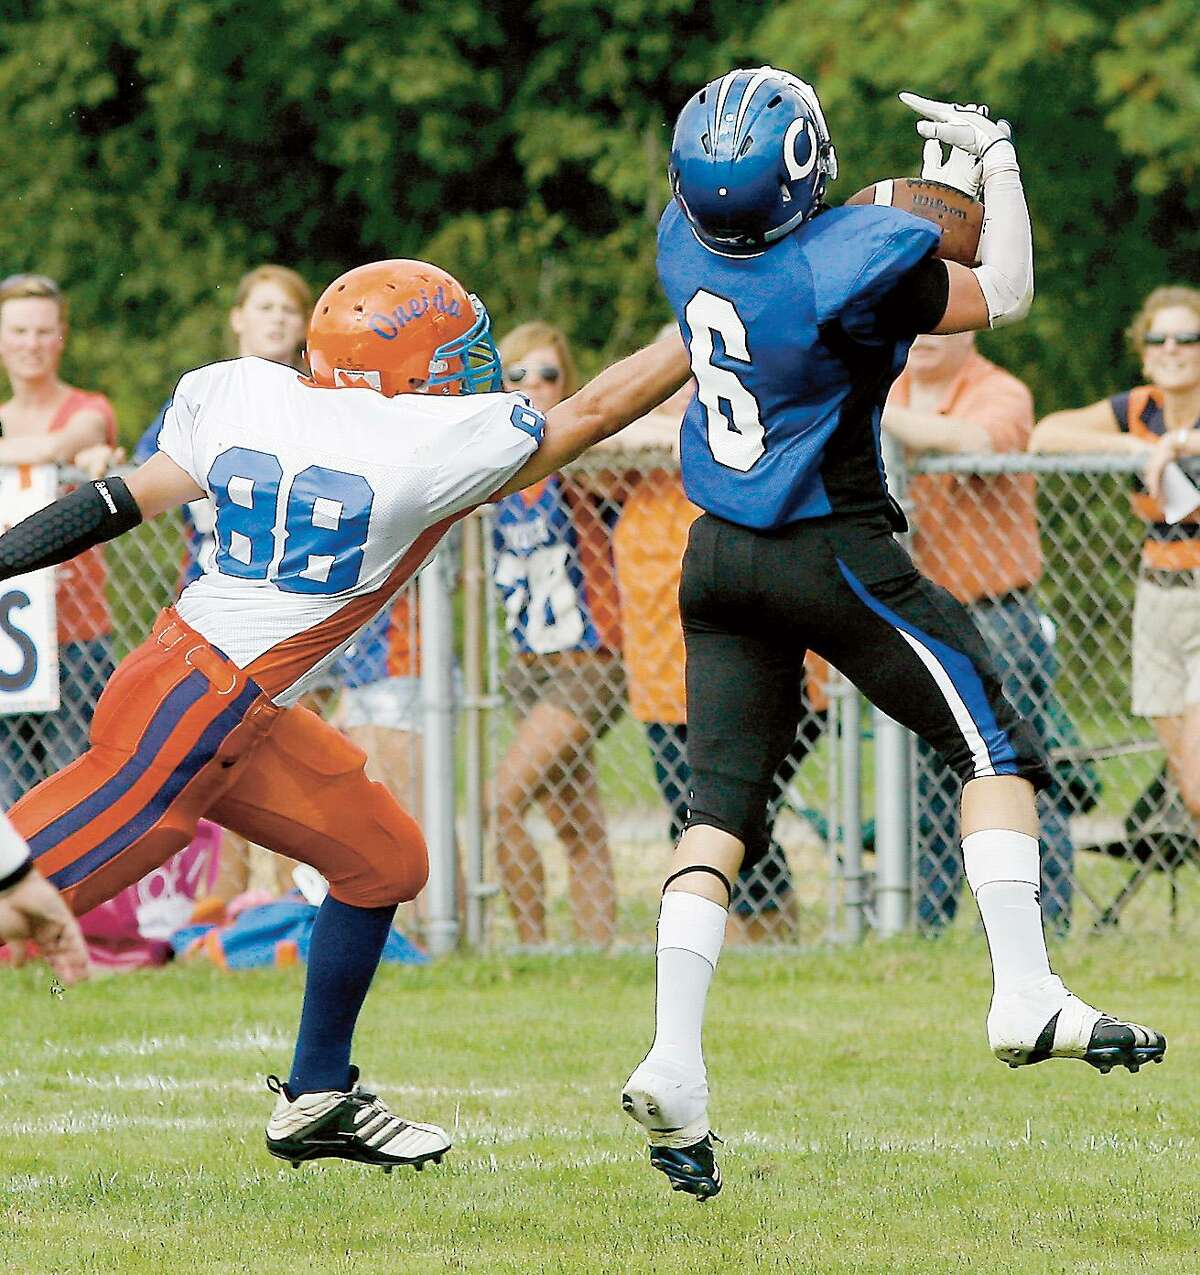 Dispatch Staff Photo by JOHN HAEGER twitter.com/oneidaphotoCamden's Cody Sullivan (6) leaps to make the catch as Oneida's Jimmy Moyer (88) defends in the first quarter of the season opener against Oneida on Friday, Sept. 2, 2011 in Camden.